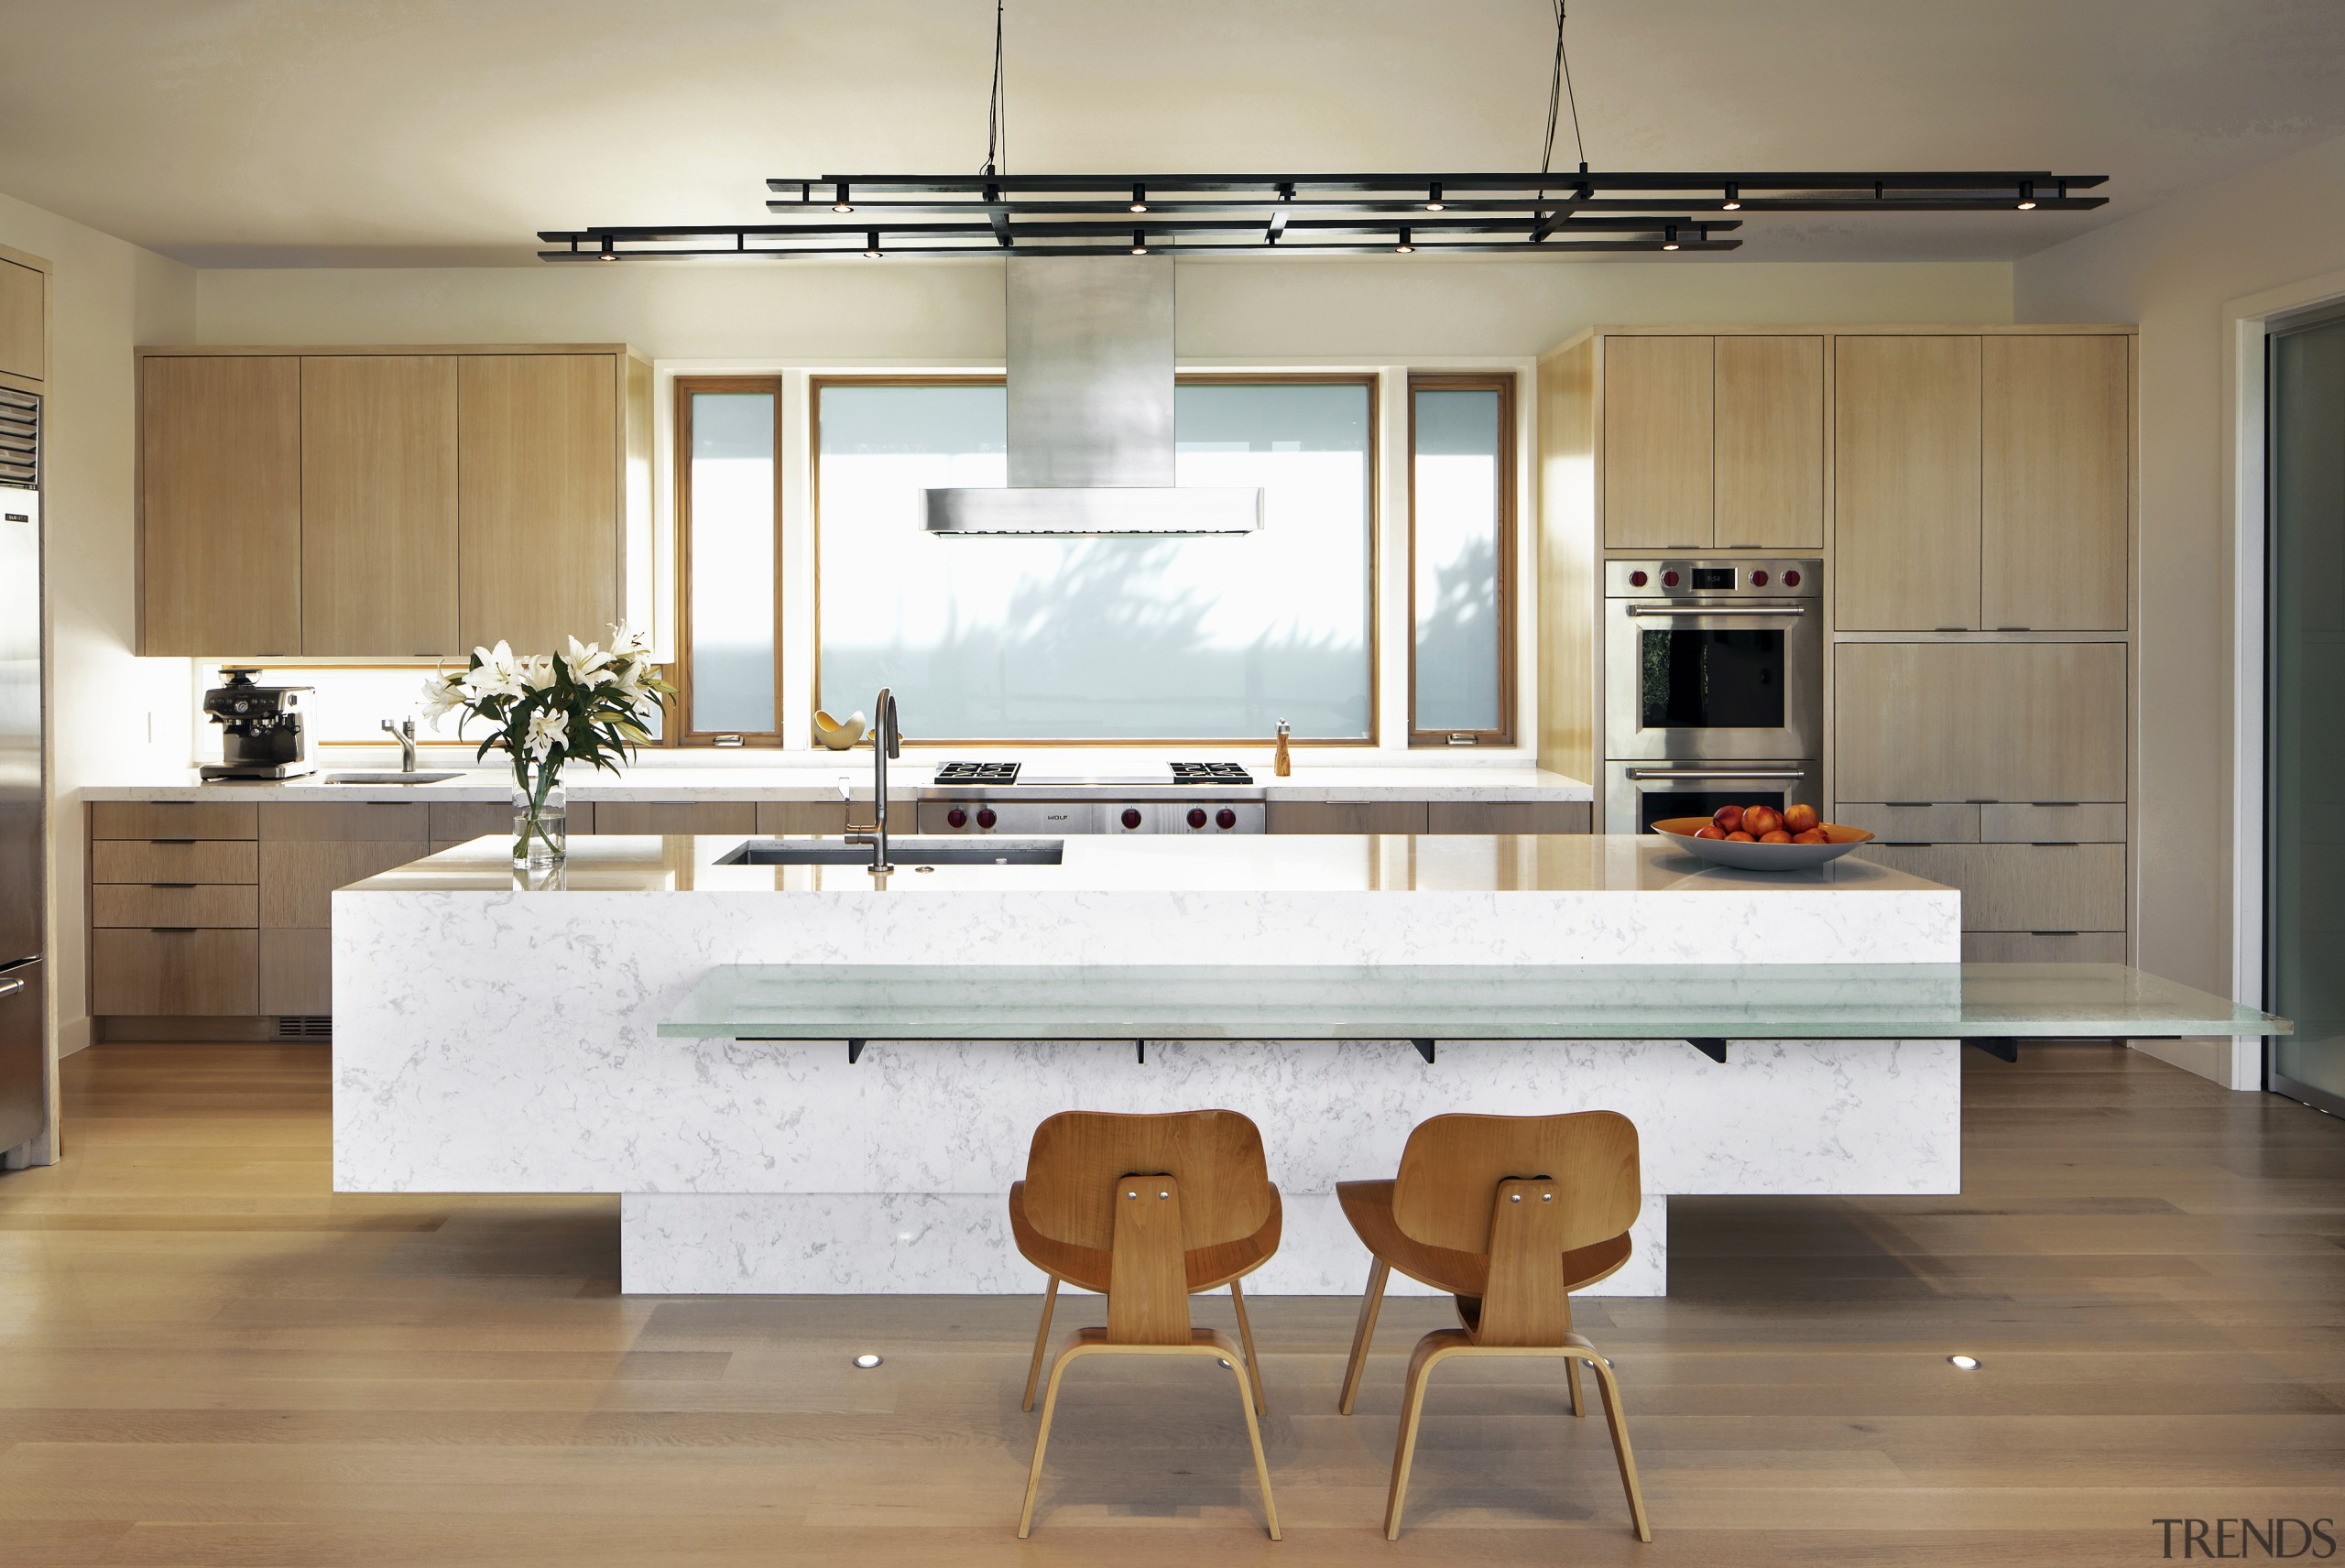 Architect Nils Finne prefers to select subtle materials architecture, bar stool, cabinetry, countertop, glass benchtop, timber floor, furniture, home, house, interior design, kitchen, lighting, plywood, sink, Nils Finne, Finne Architects